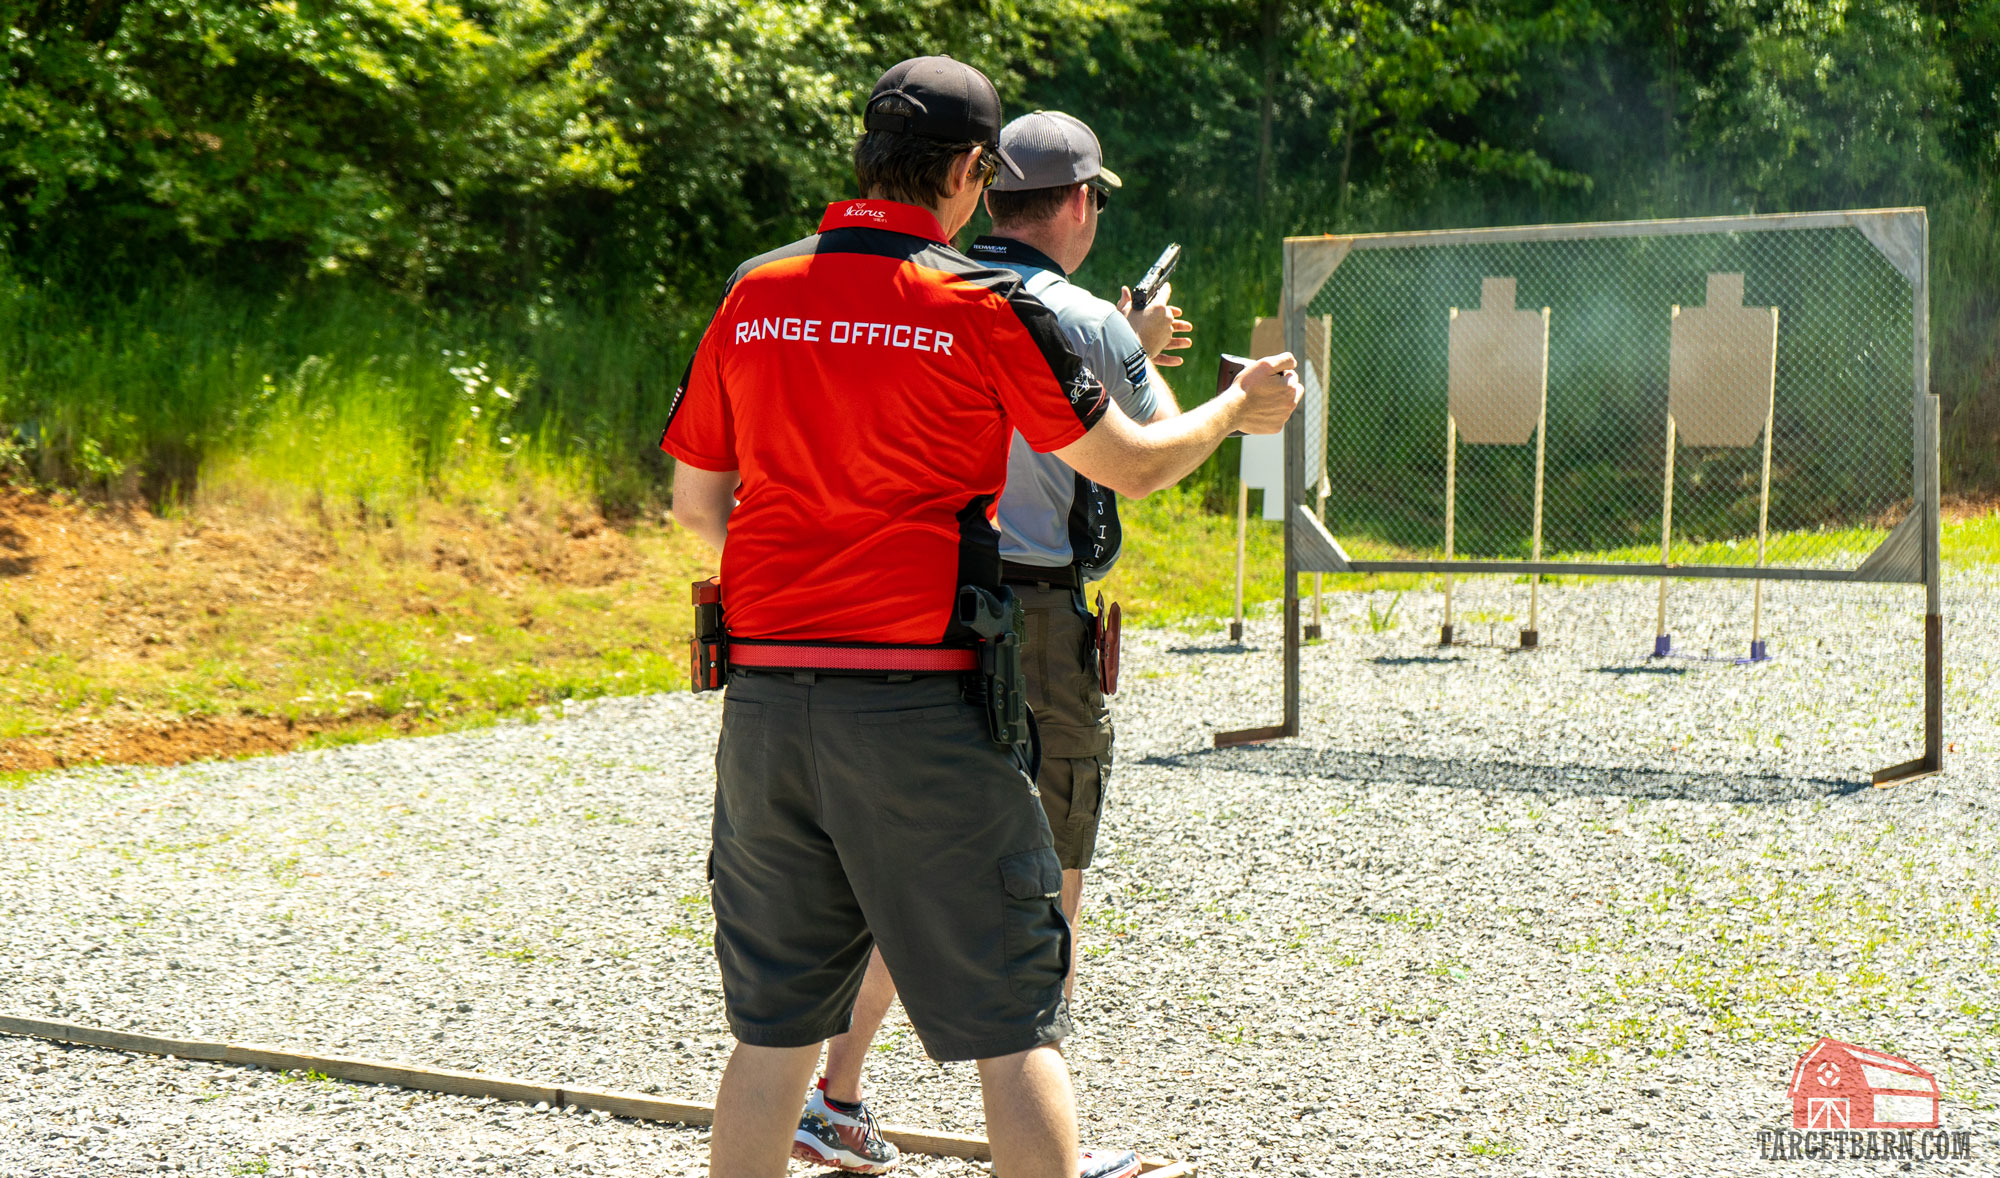 a range officer timing a shooter during a stage at a uspsa match